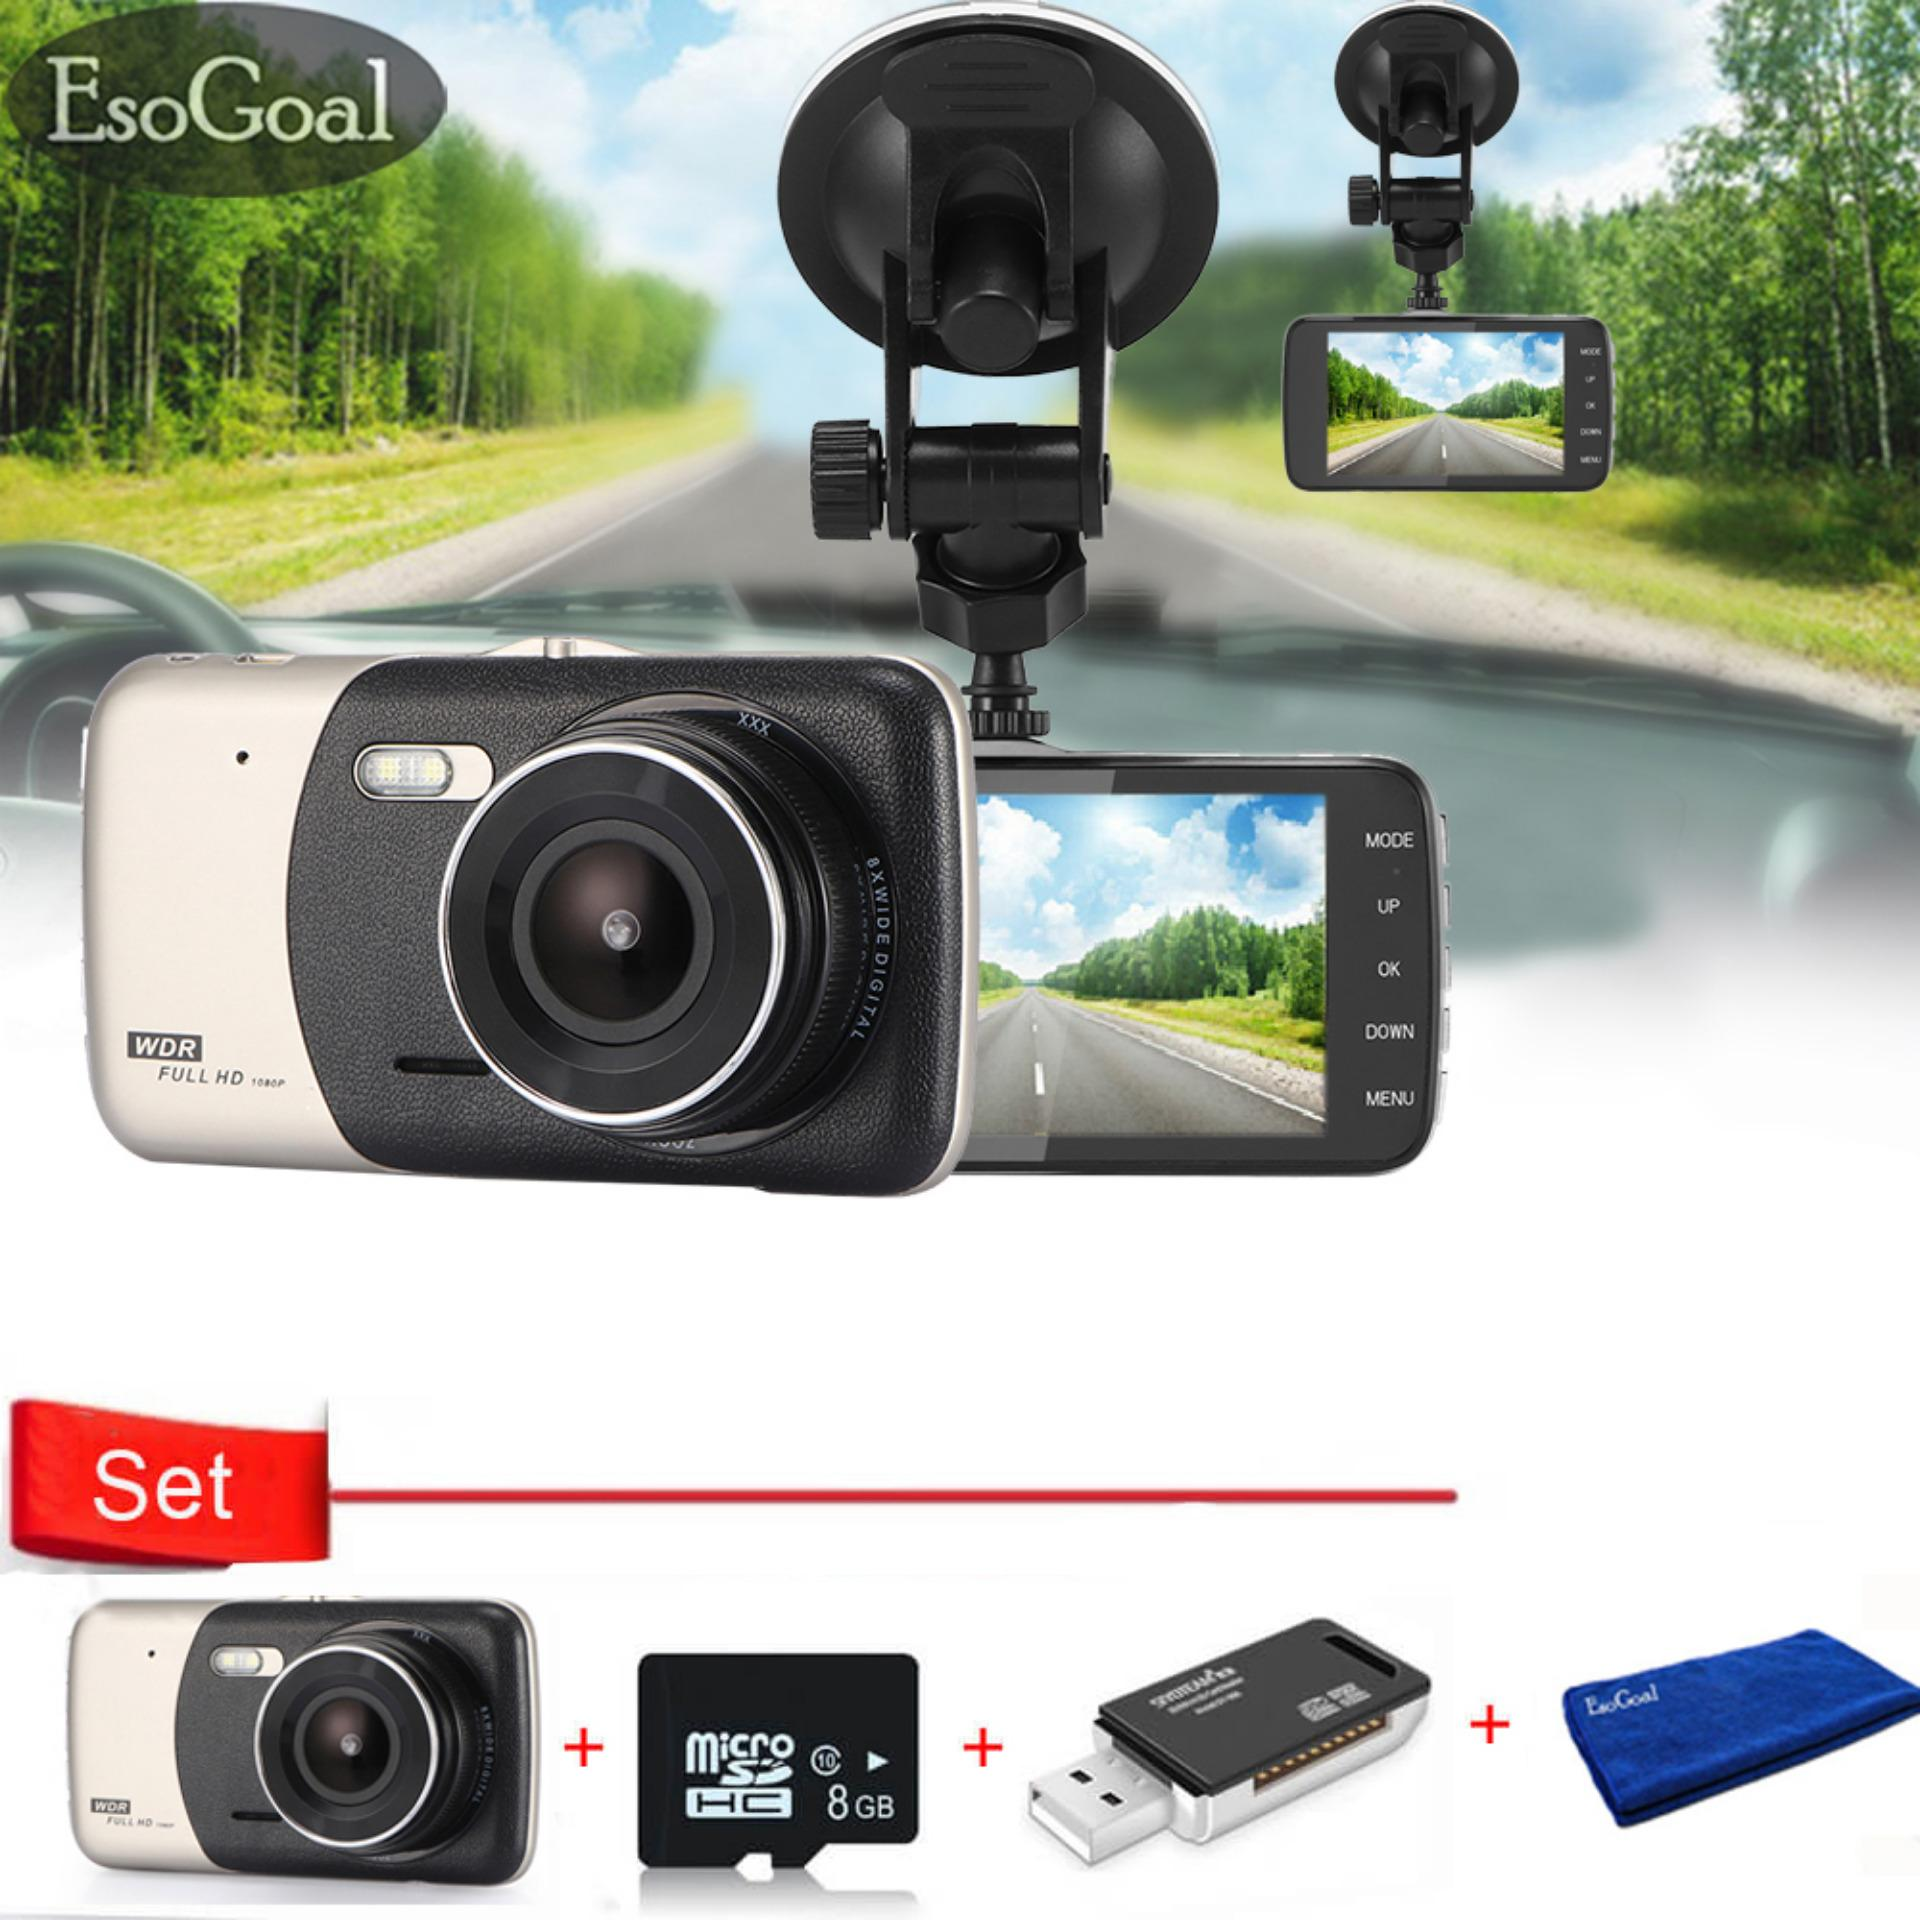 Low Price Esogoal 4 Dash Cam Front And Rear Dual Lens Camera Night Vision 1080P 140 Car Dvr Video Recorder G Sensor Vehicle Camera And Micro C 10 8G Memory Card And Usb 2 Sd Card Reader